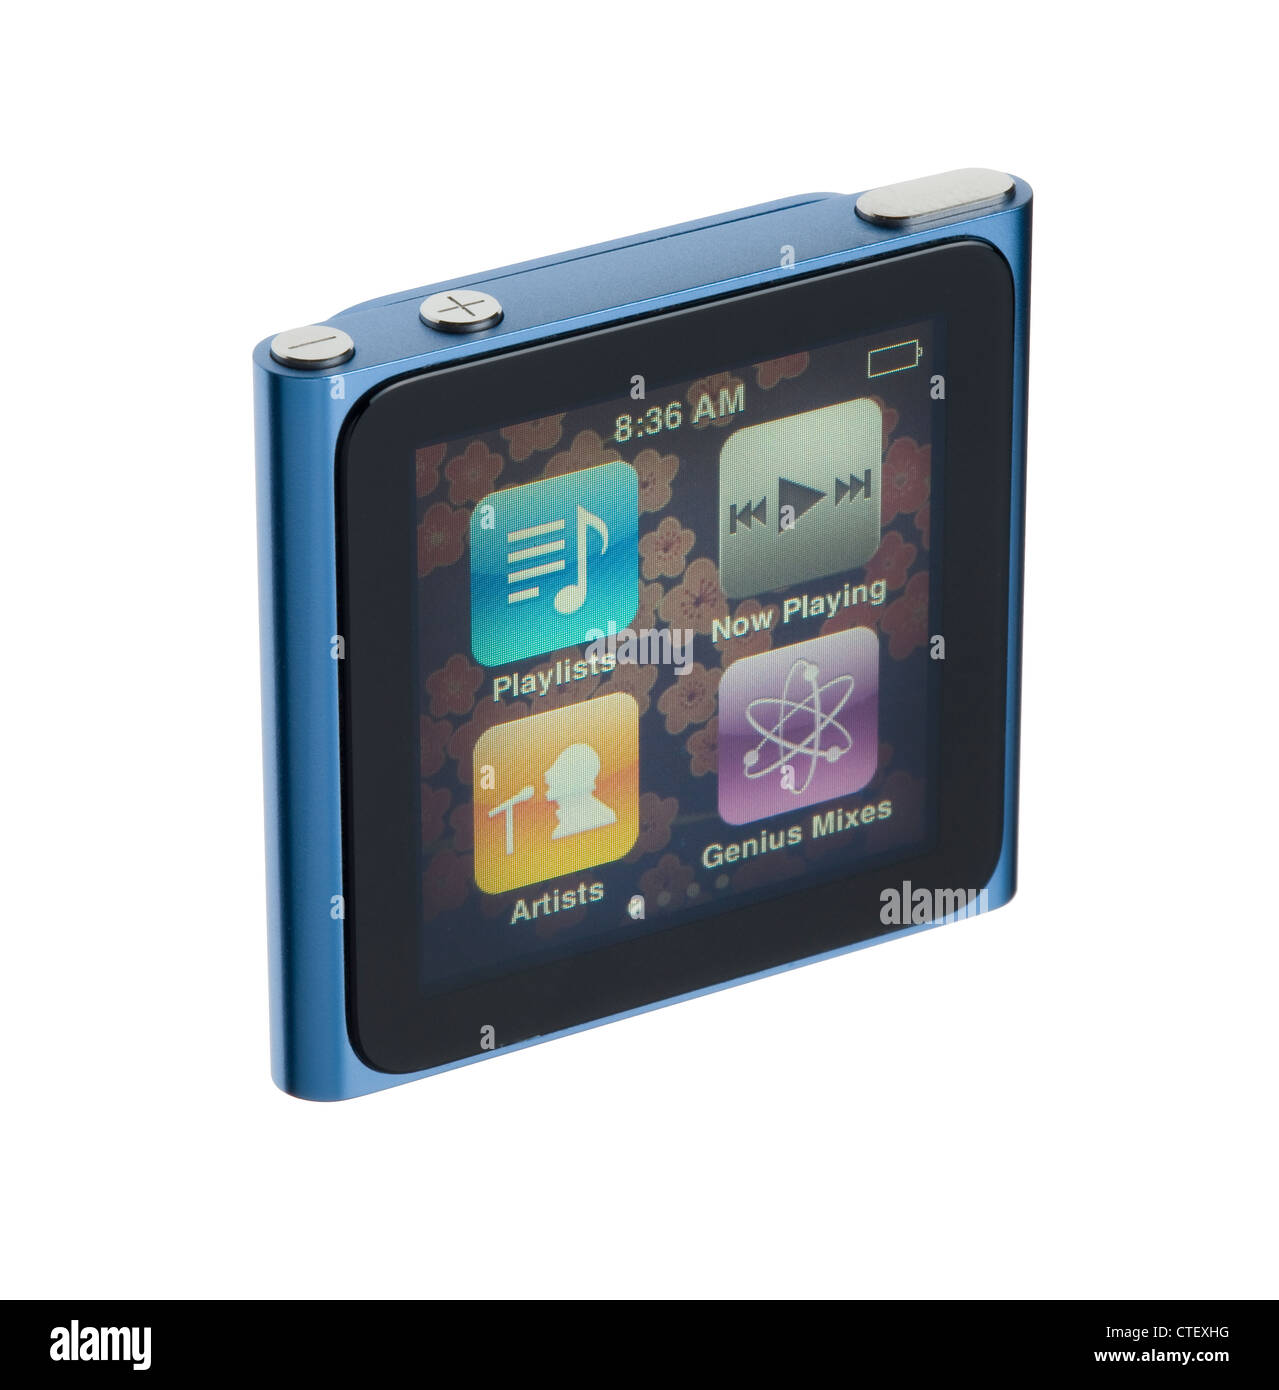 iPod Nano 6th Generation. Music player with touch screen